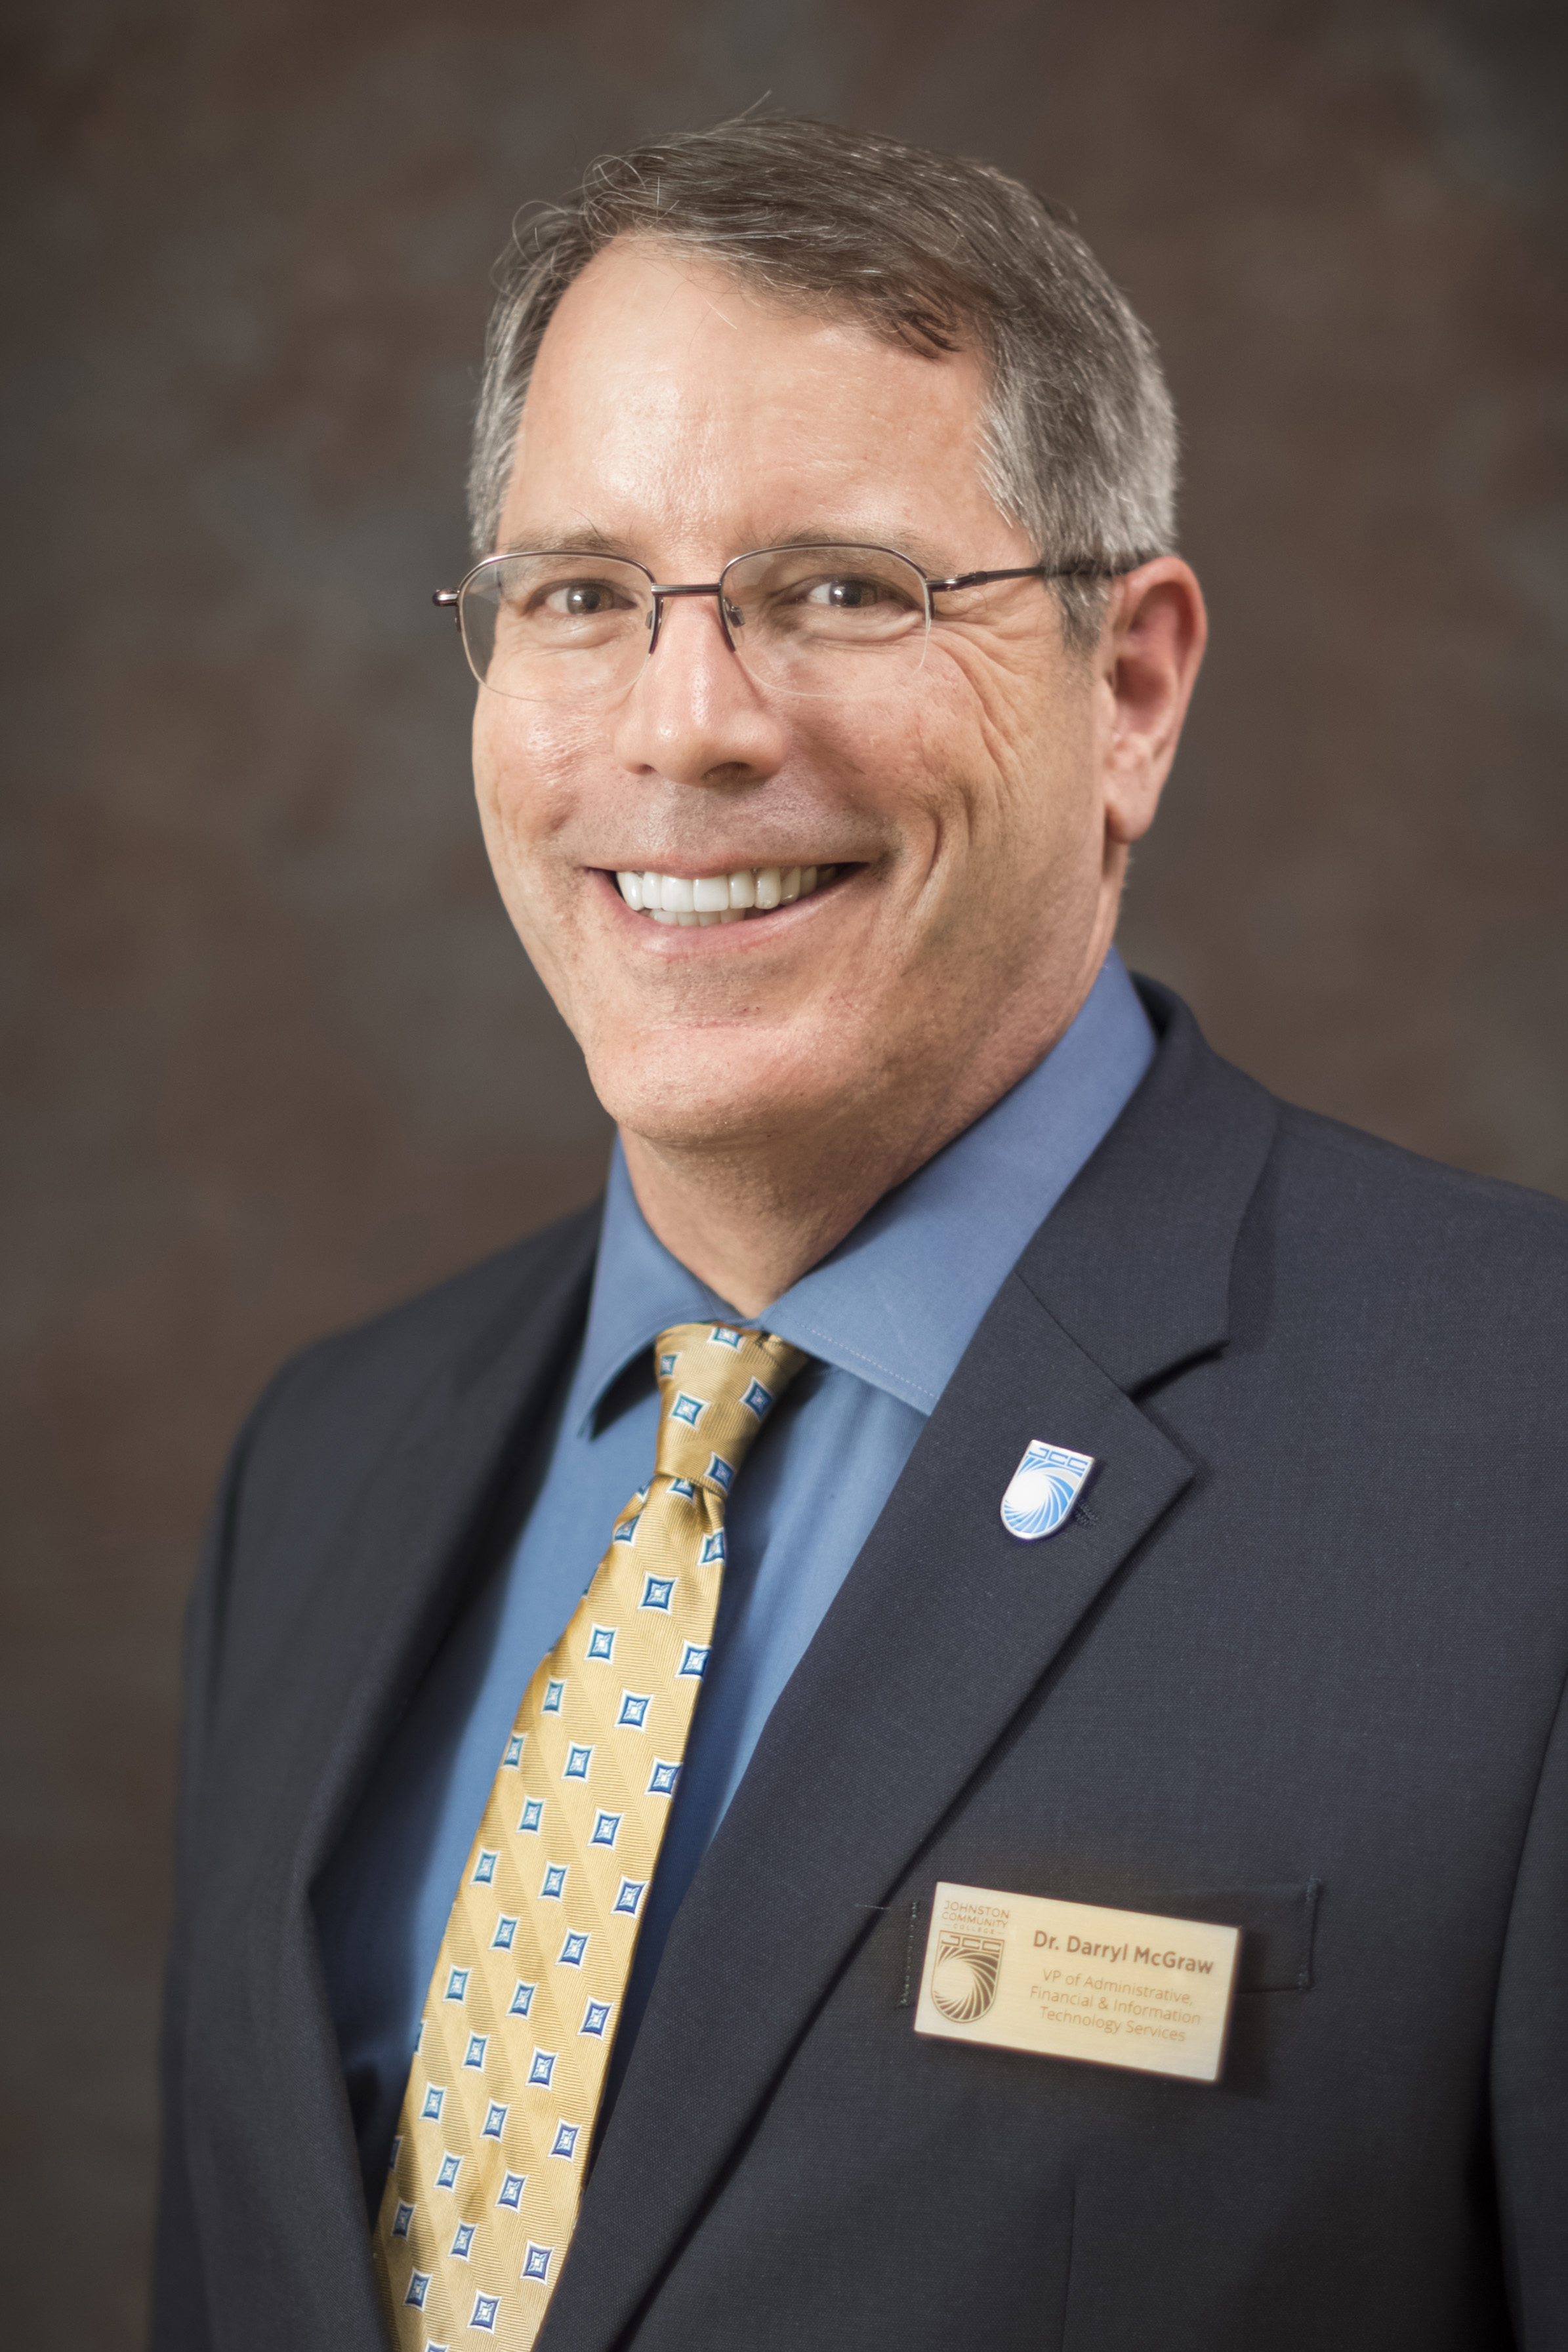 McGraw served as the college's chief financial officer.